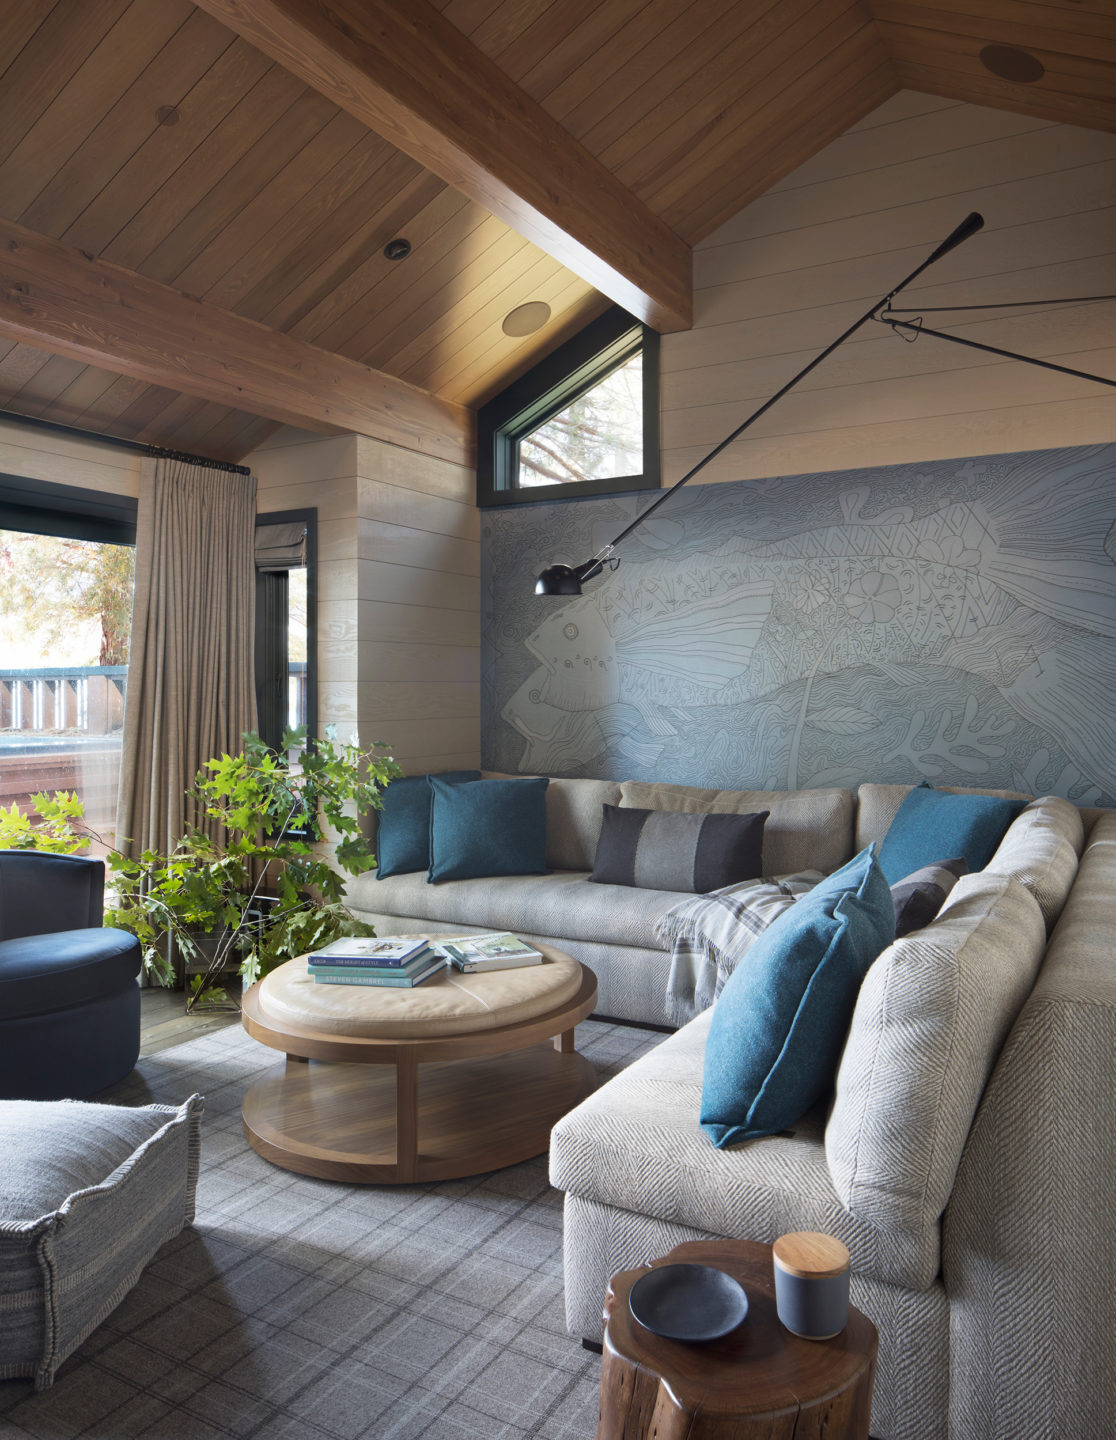 Jennifer_robins_interiors_projects_lake_tahoe_Leupold_15_off_living_room_LR_couch